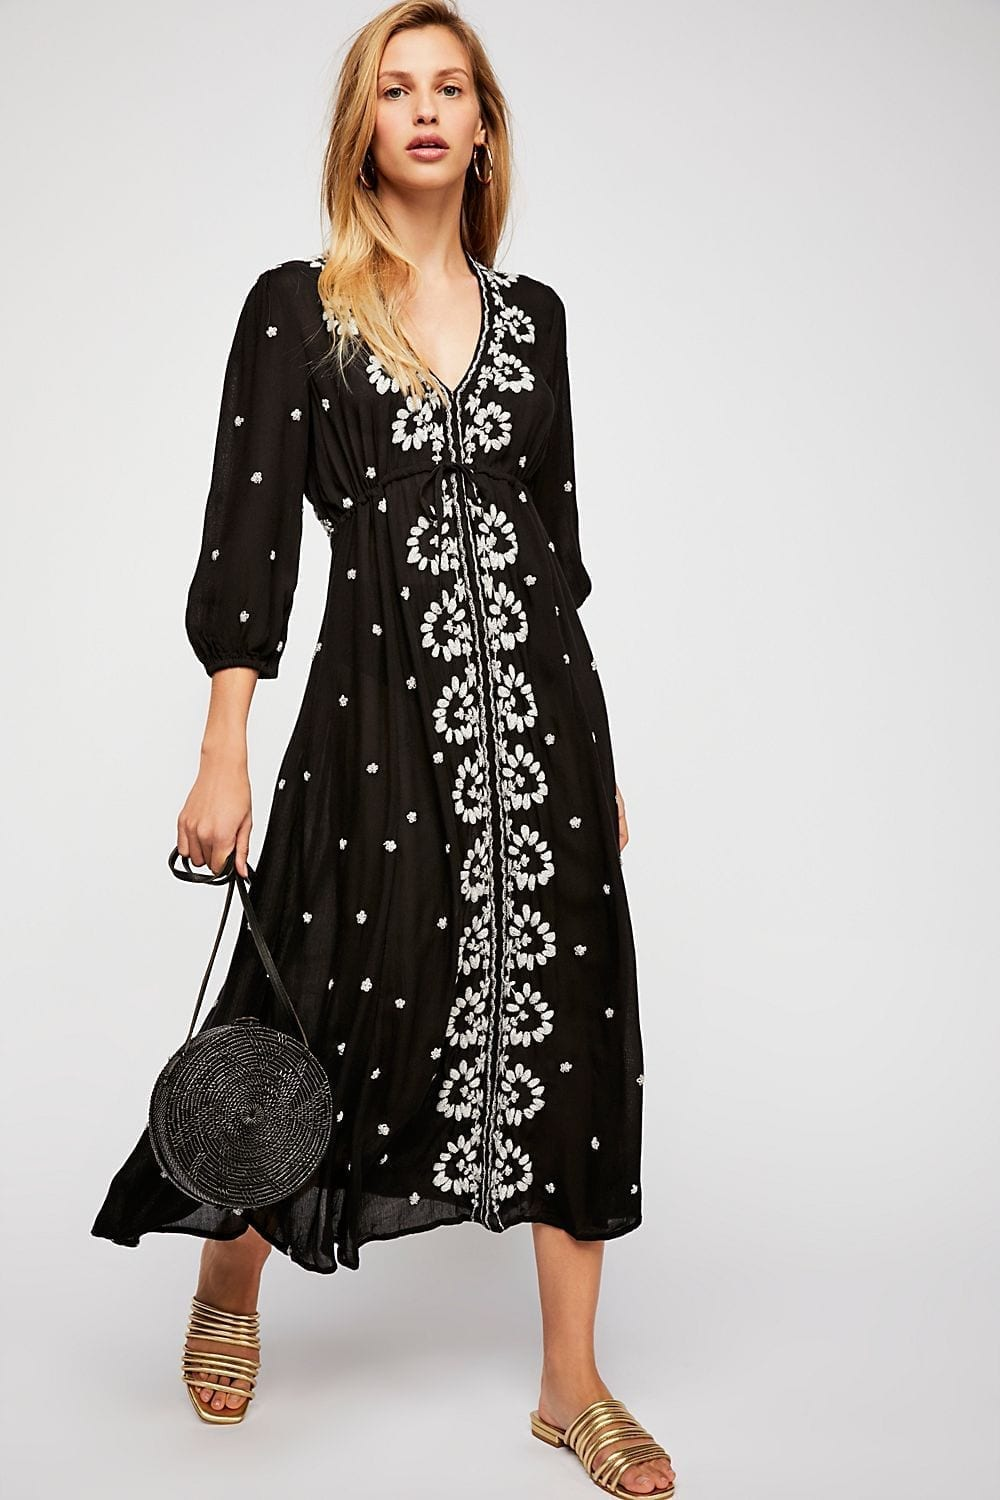 8a91ea1c488 FREEPEOPLE Embroidered Fable Midi Black Dress - We Select Dresses